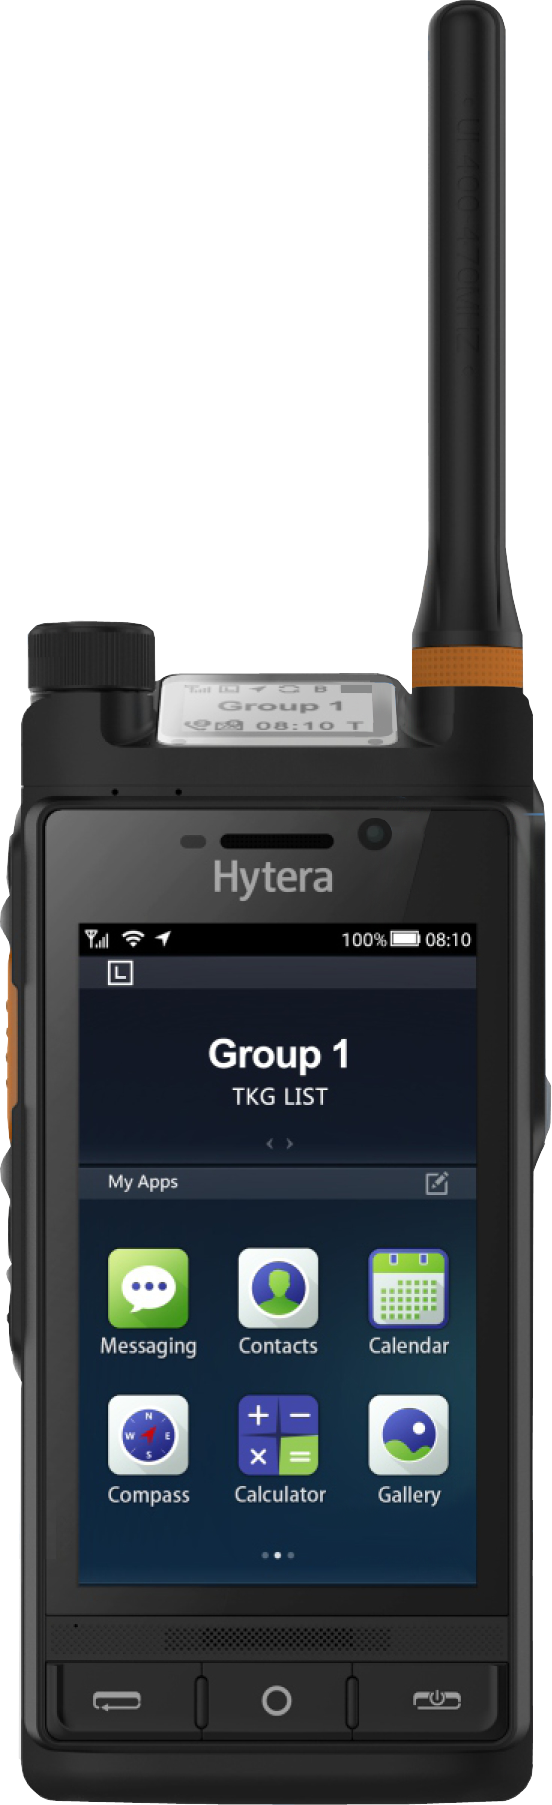 Hytera PDC760 featured image